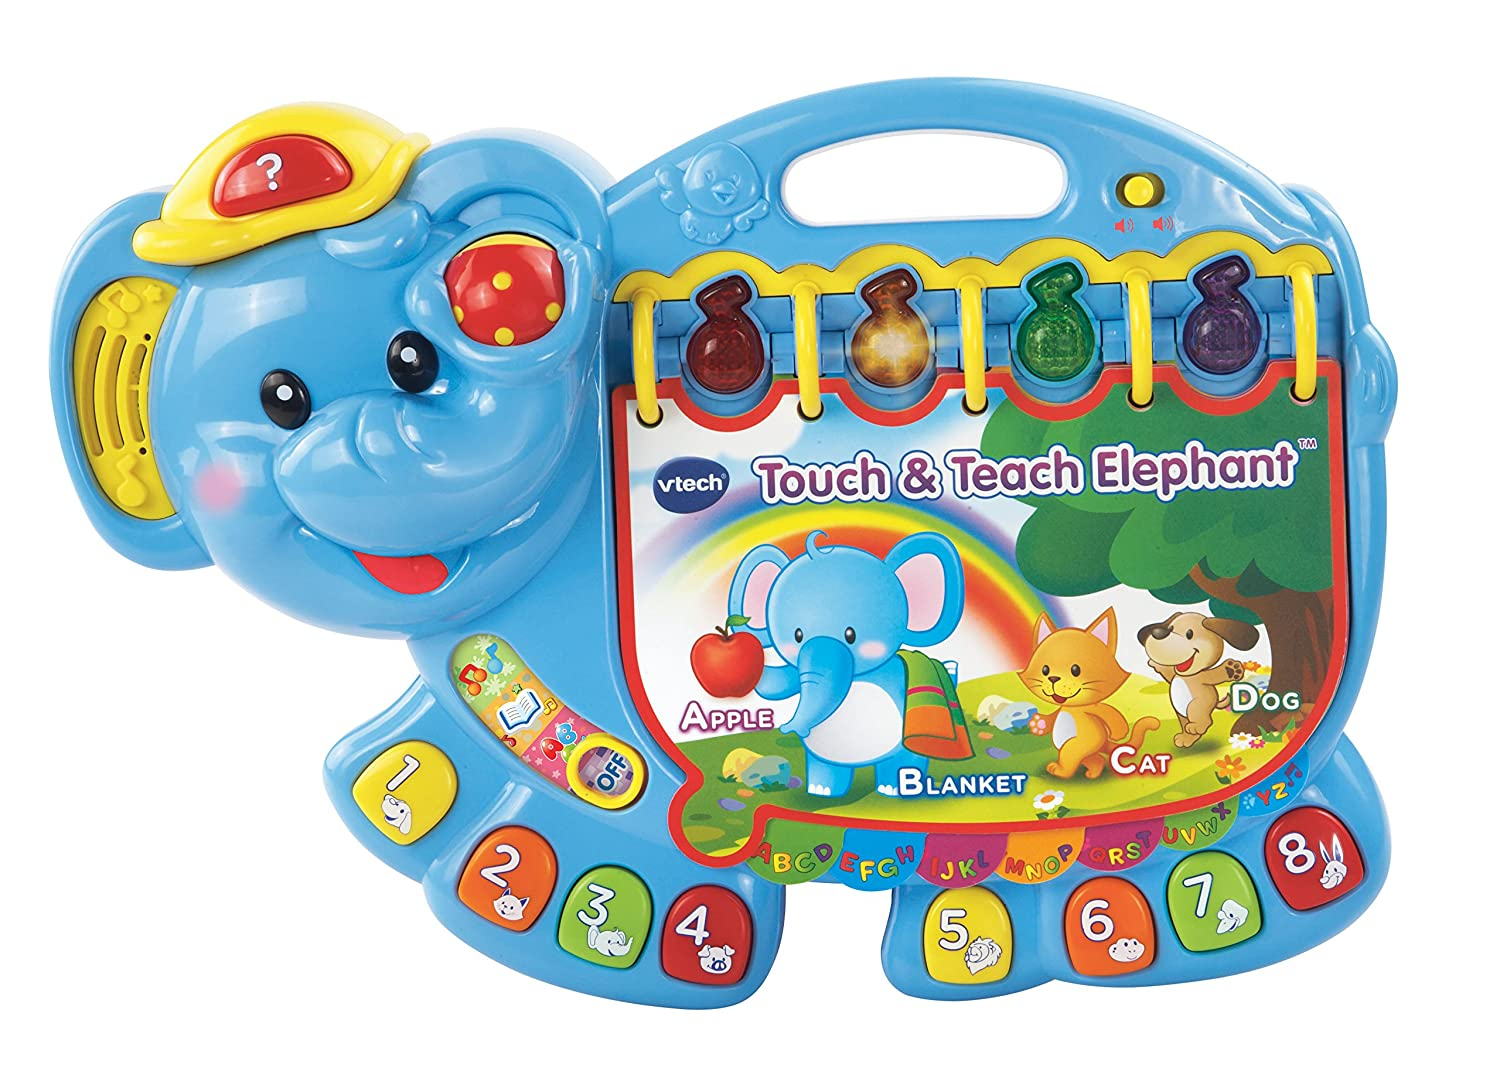 Best Educational Toys For Tech : Top learning toys for toddlers developmental and